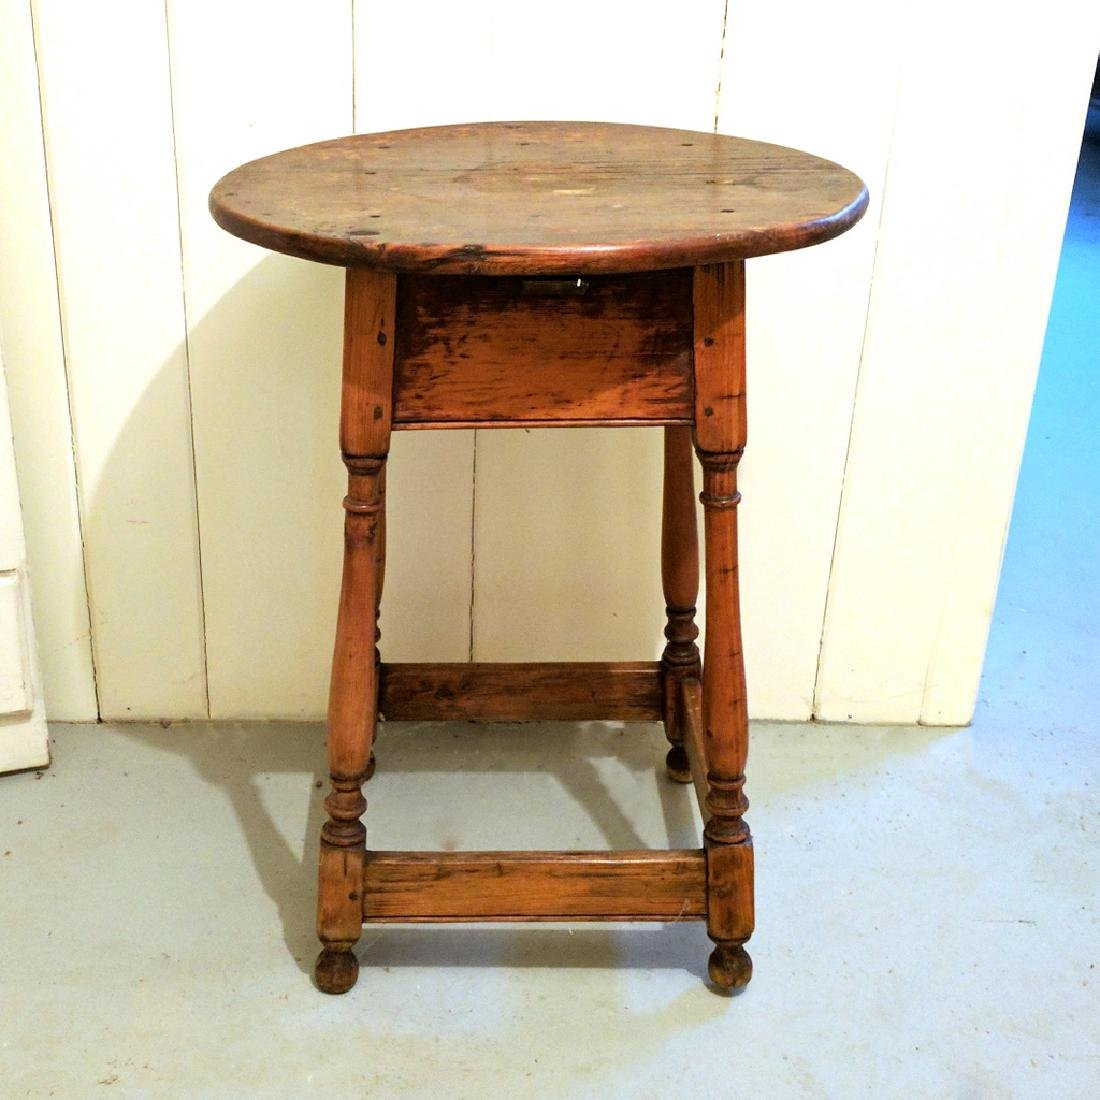 PINE TAVERN TABLE